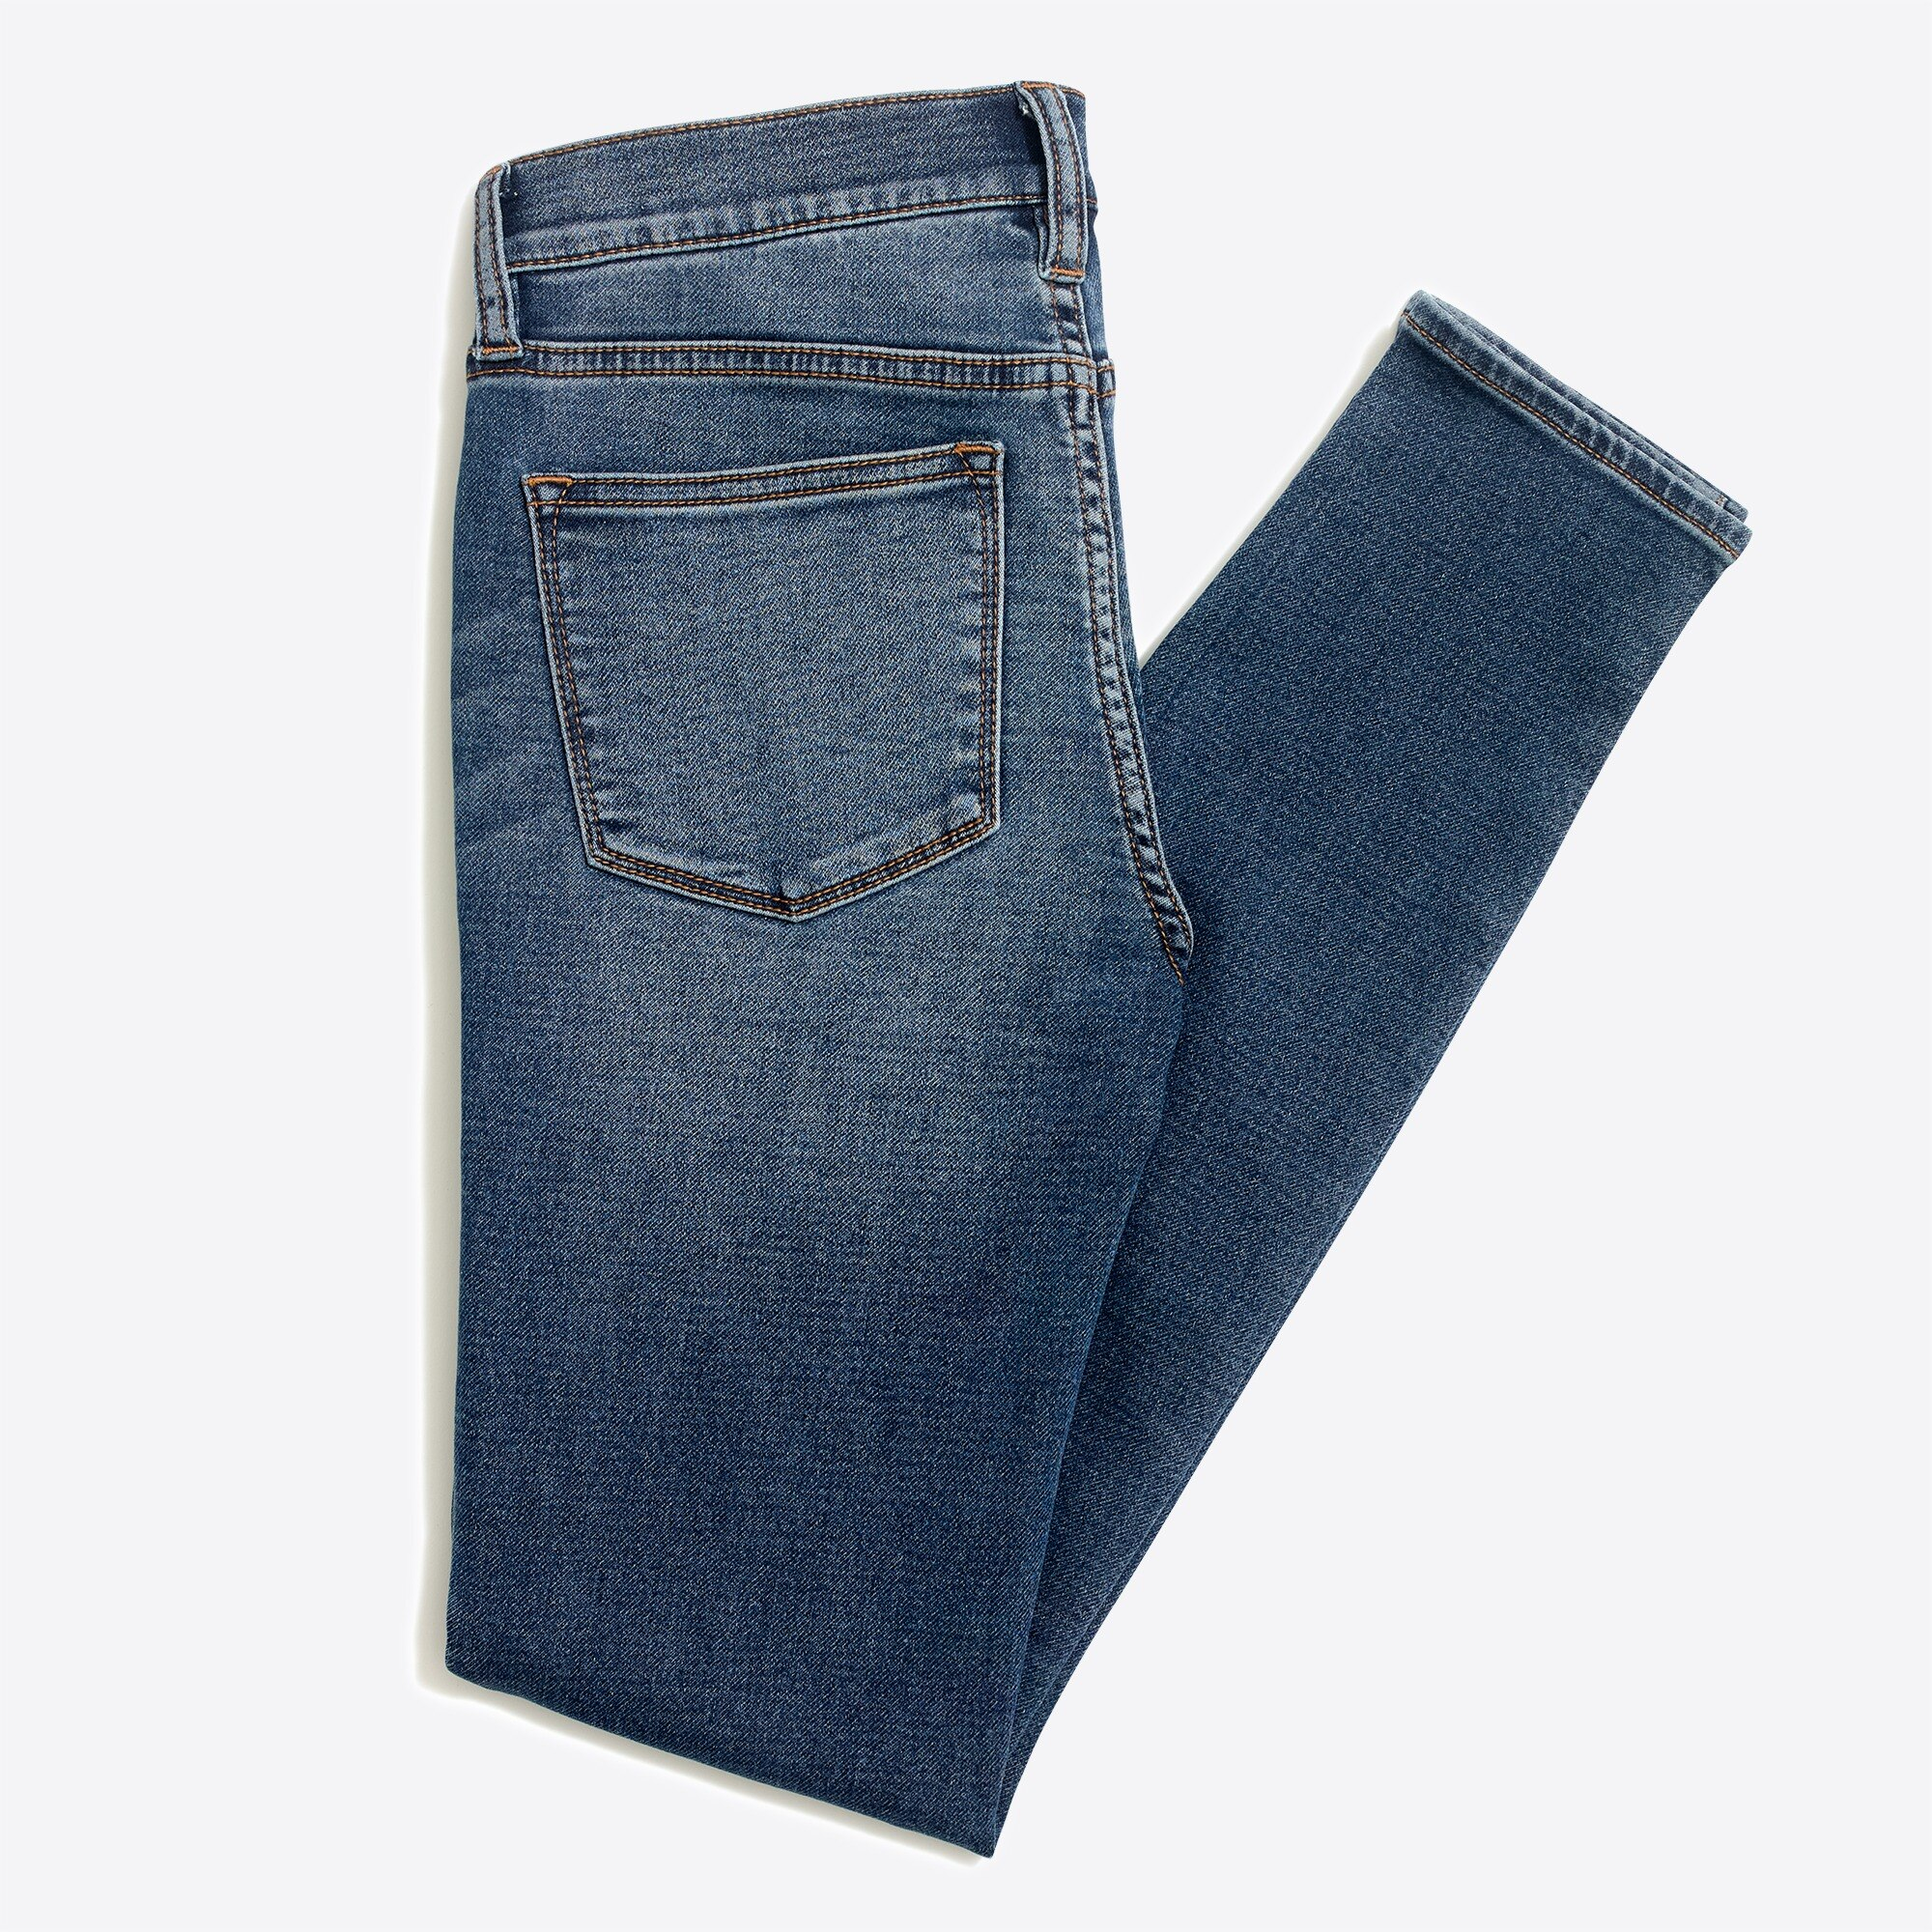 "Image 3 for 8"" anywhere skinny jean in Astoria wash"